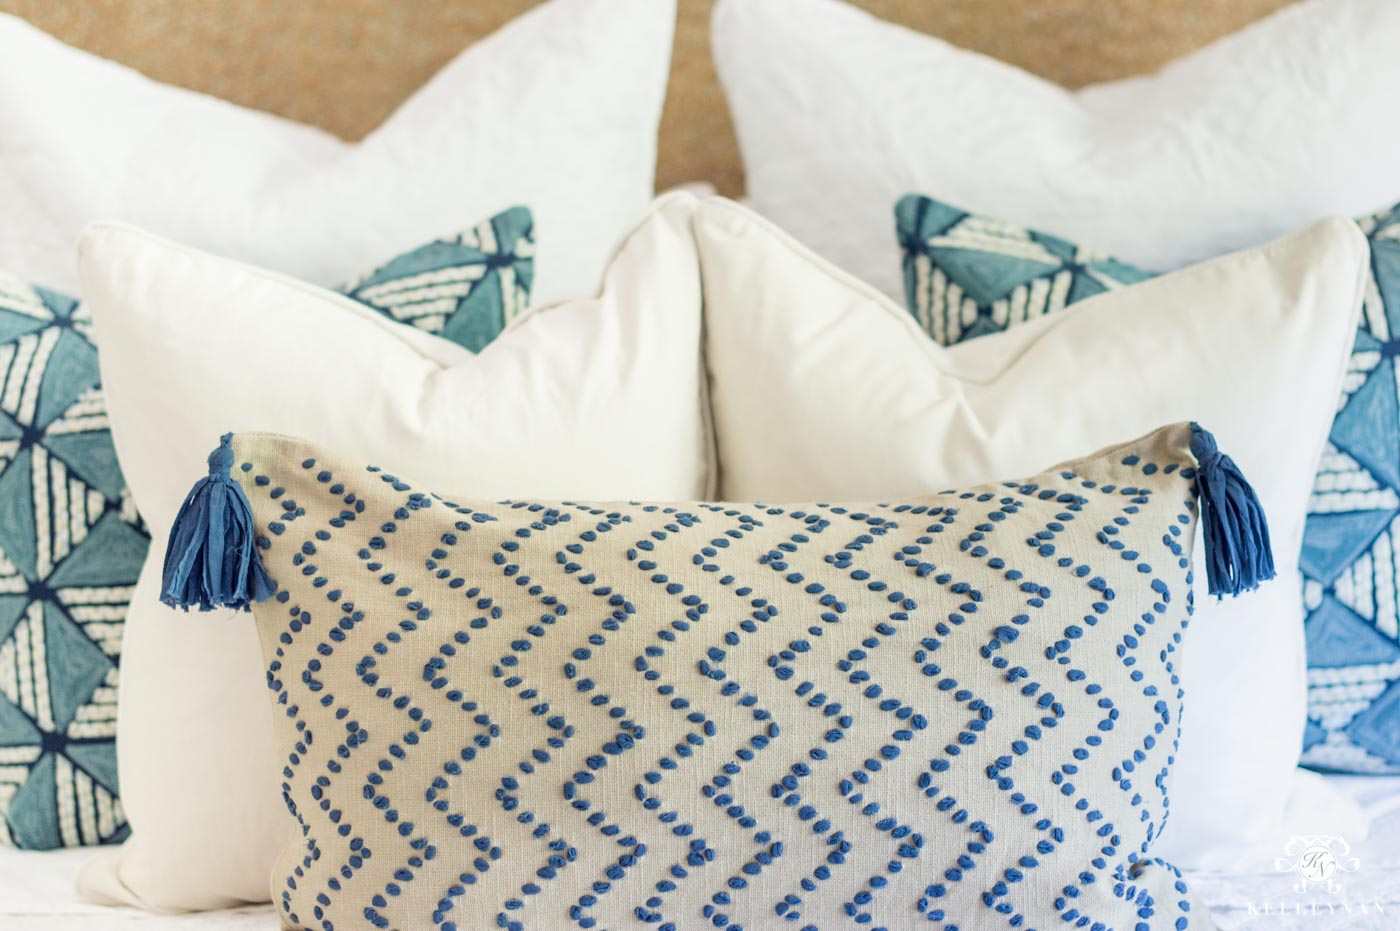 How to Arrange Throw Pillows on a Bed